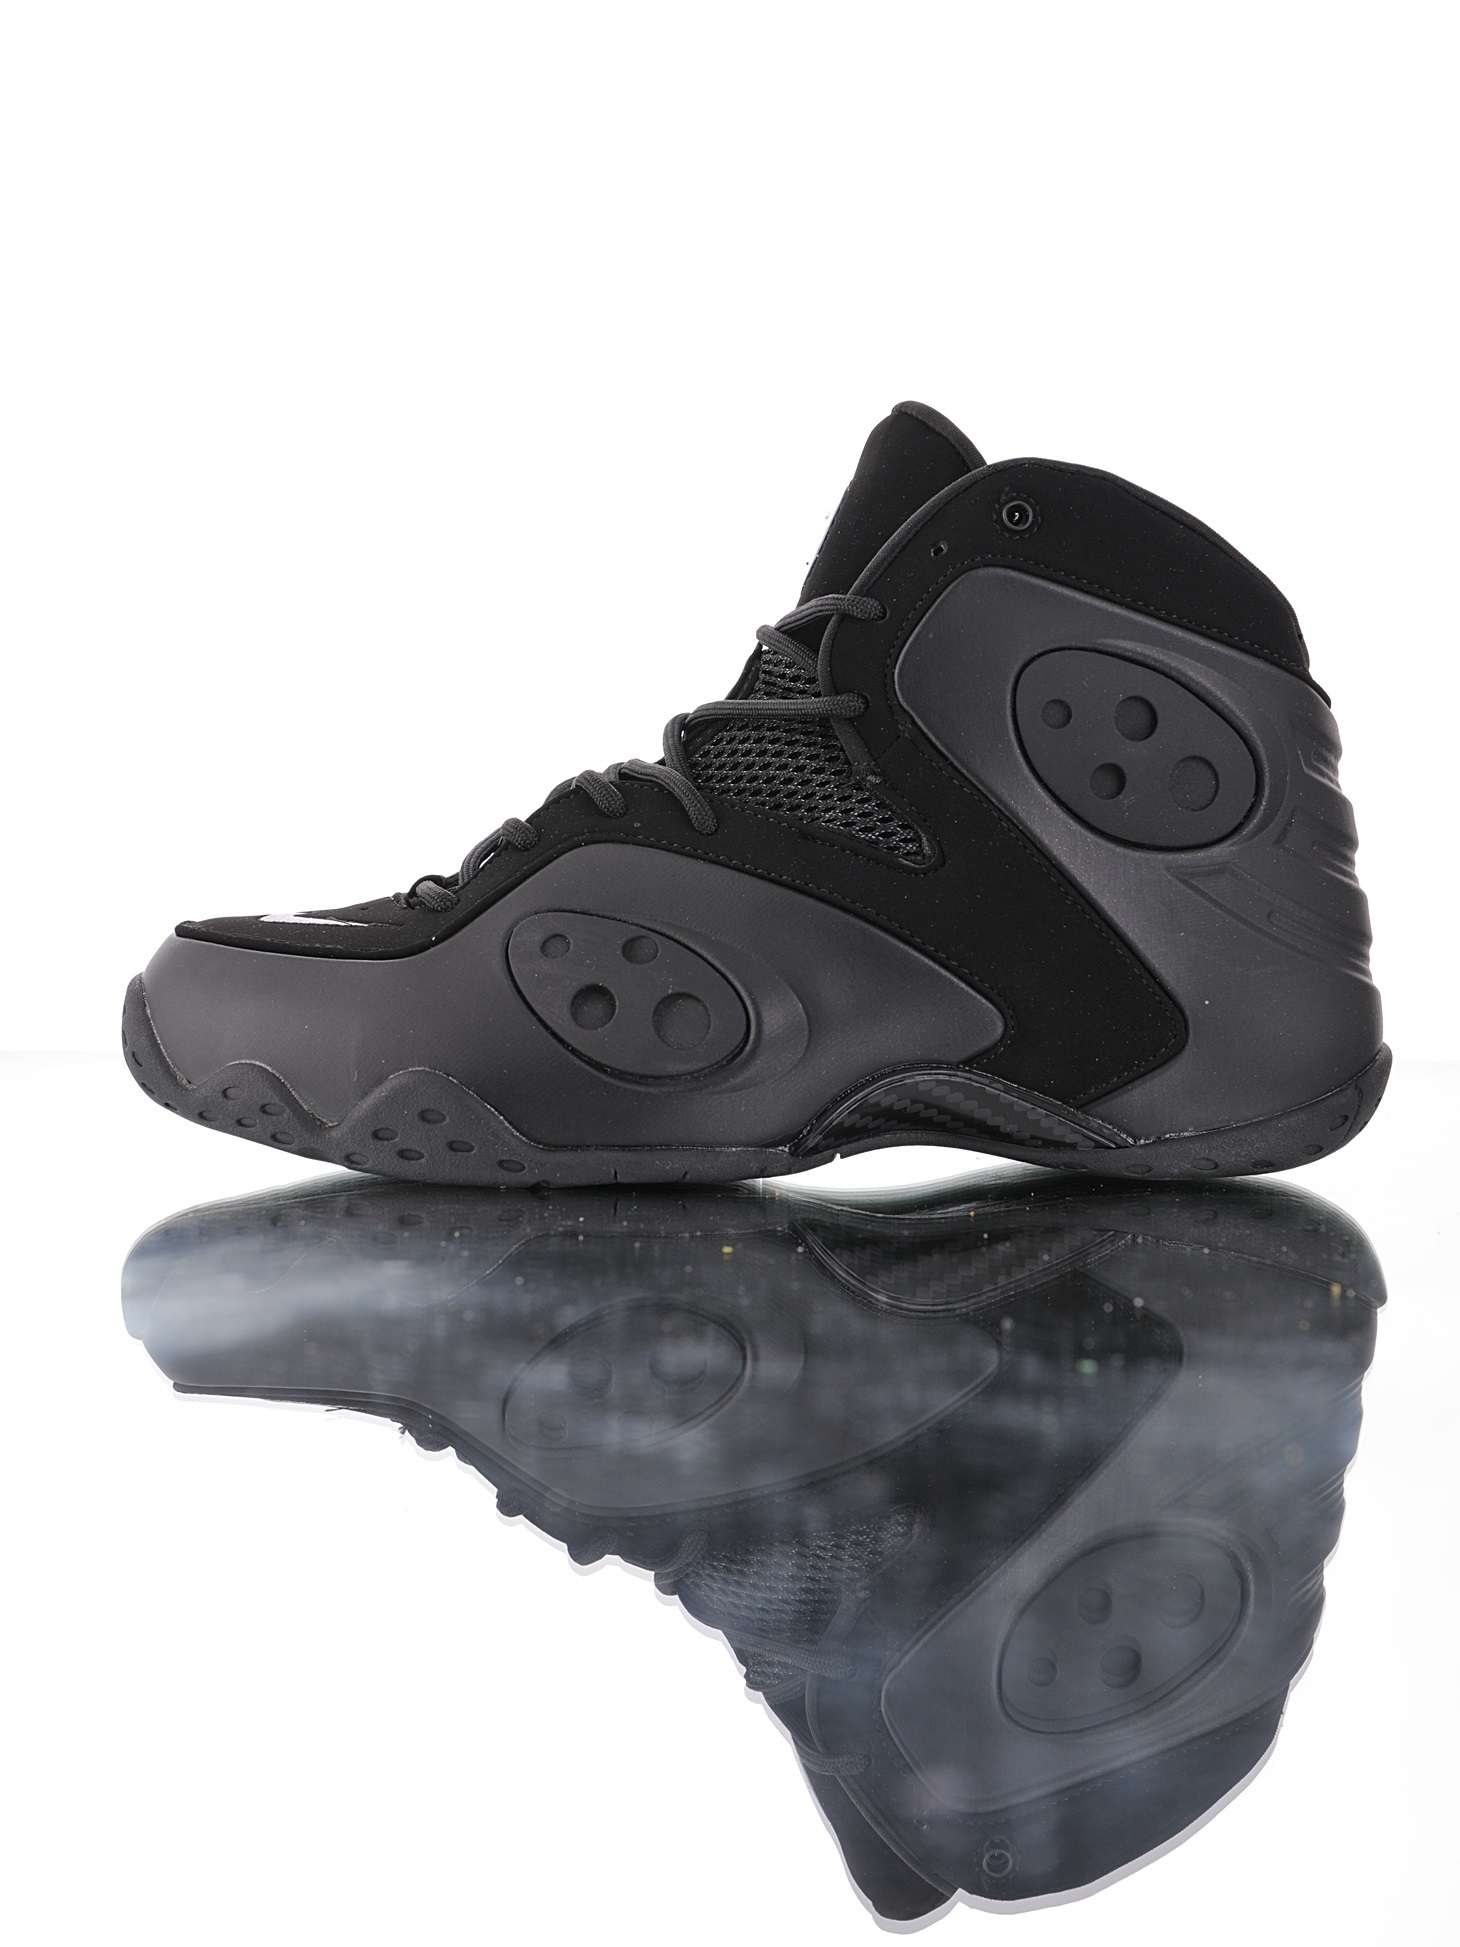 "耐克Nike Zoom Rookie ""Black""哈达威新秀系列中帮系列文化篮球鞋 ""白黑夜光喷""BQ3379-002"